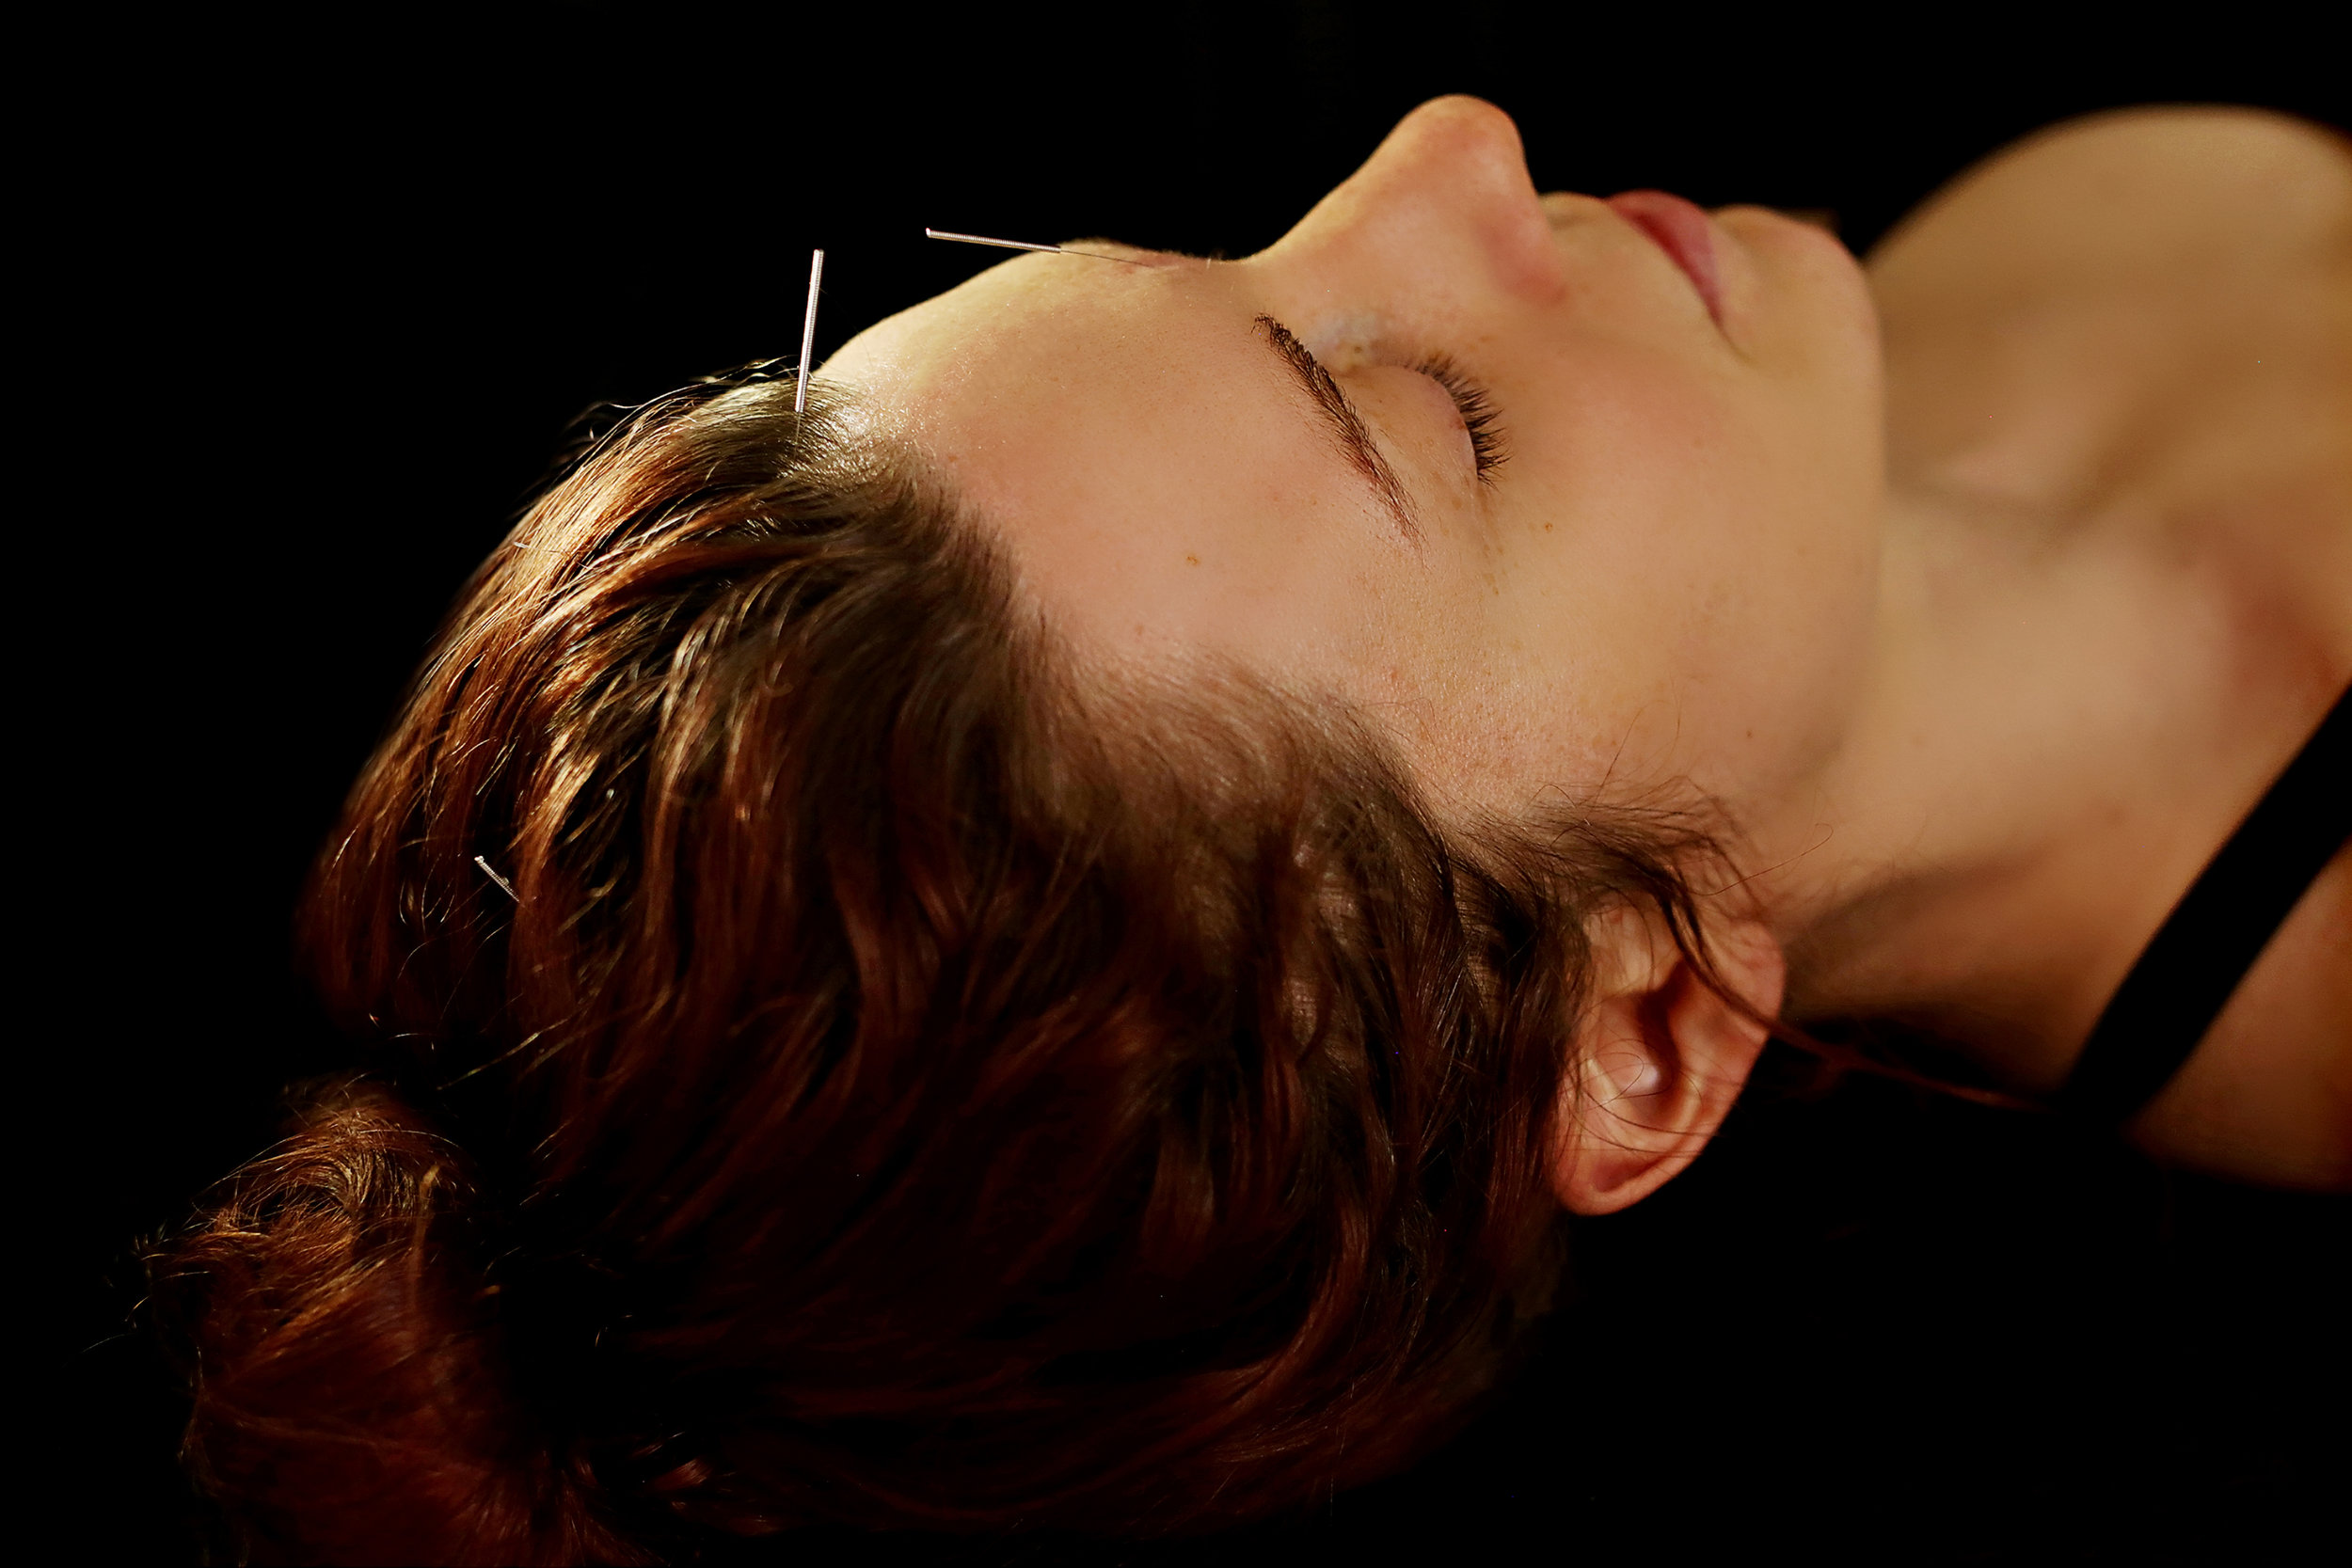 Acupuncture:  A practice of inserting fine needles through the skin at specific points to alleviate pain and  treat various physical, mental, and emotional conditions.   Dry Needling:  Also know as myofascial trigger point acupuncture. It is the practice of inserting fine needles through the skin into trigger points to help relieve pain and release muscular adhesions.